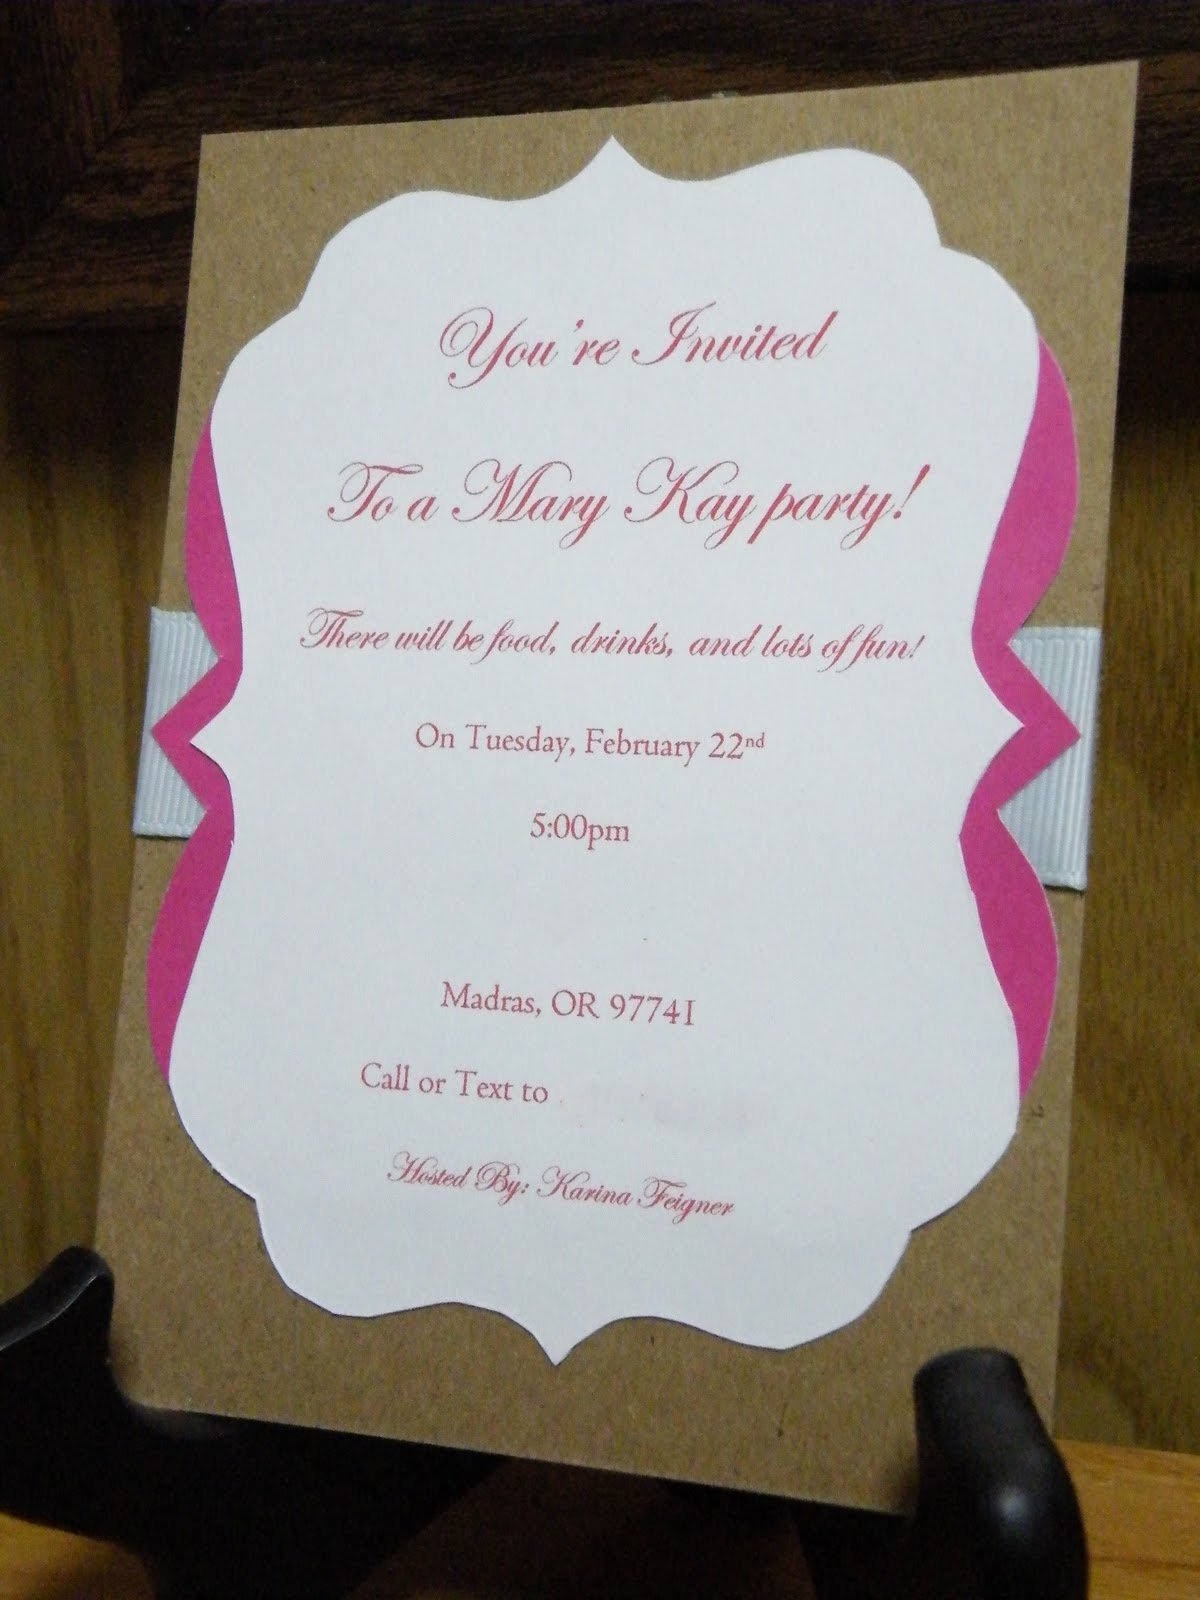 Mary Kay Party Invites Unique the Crafty Housewife Mary Kay Party Invite